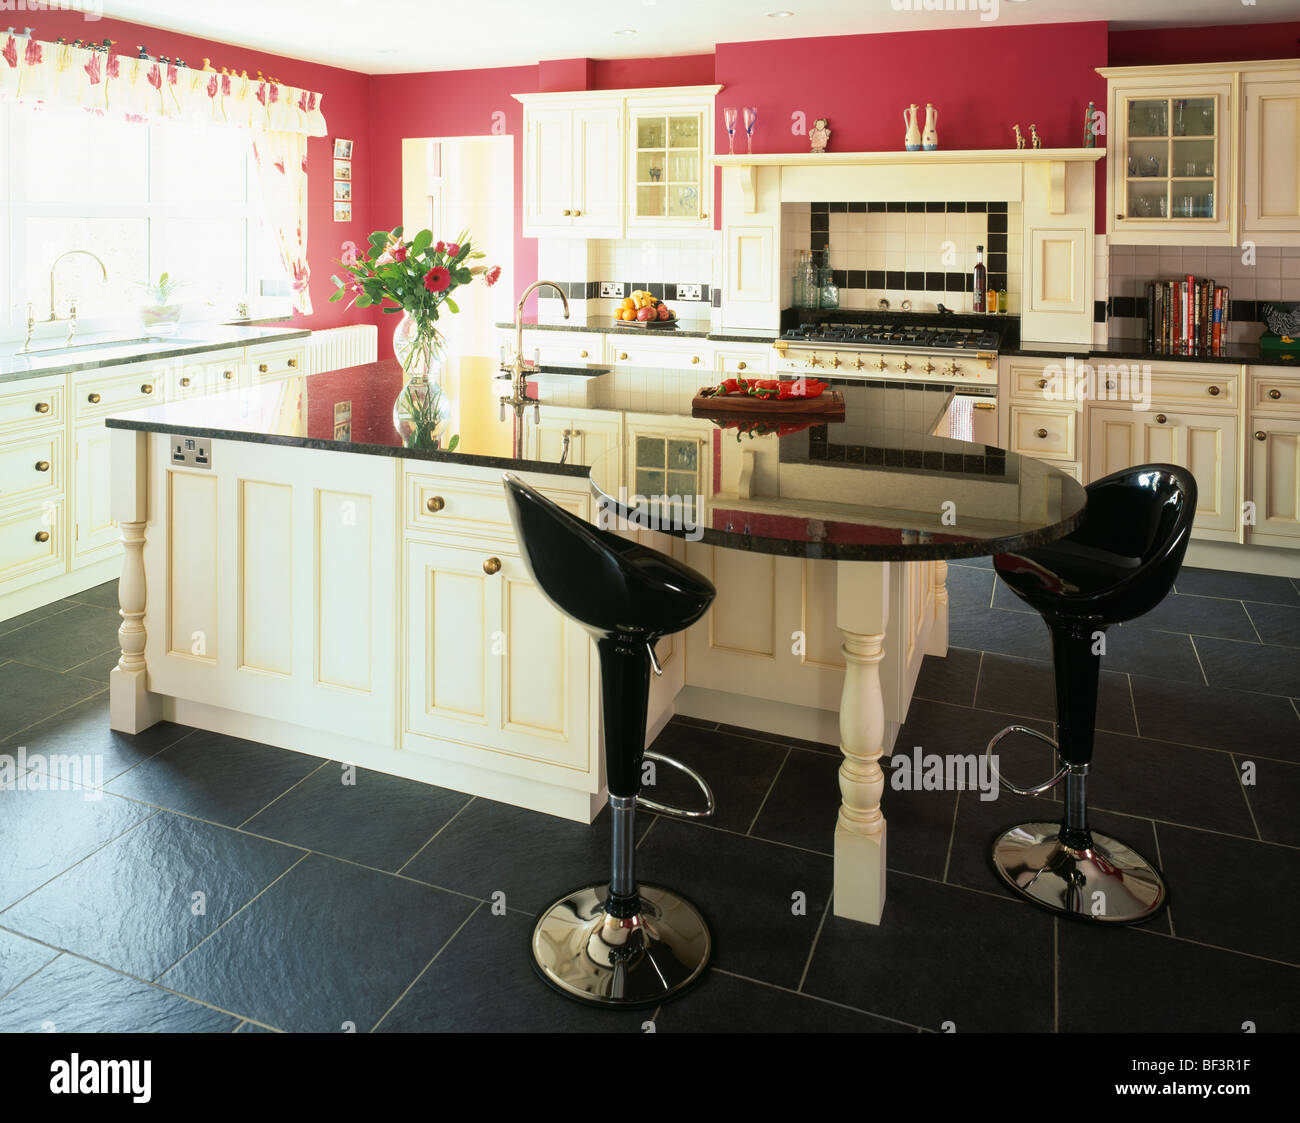 Red Floor Tiles Kitchen Black Bombo Stools At Curved Breakfast Bar In Red Kitchen With